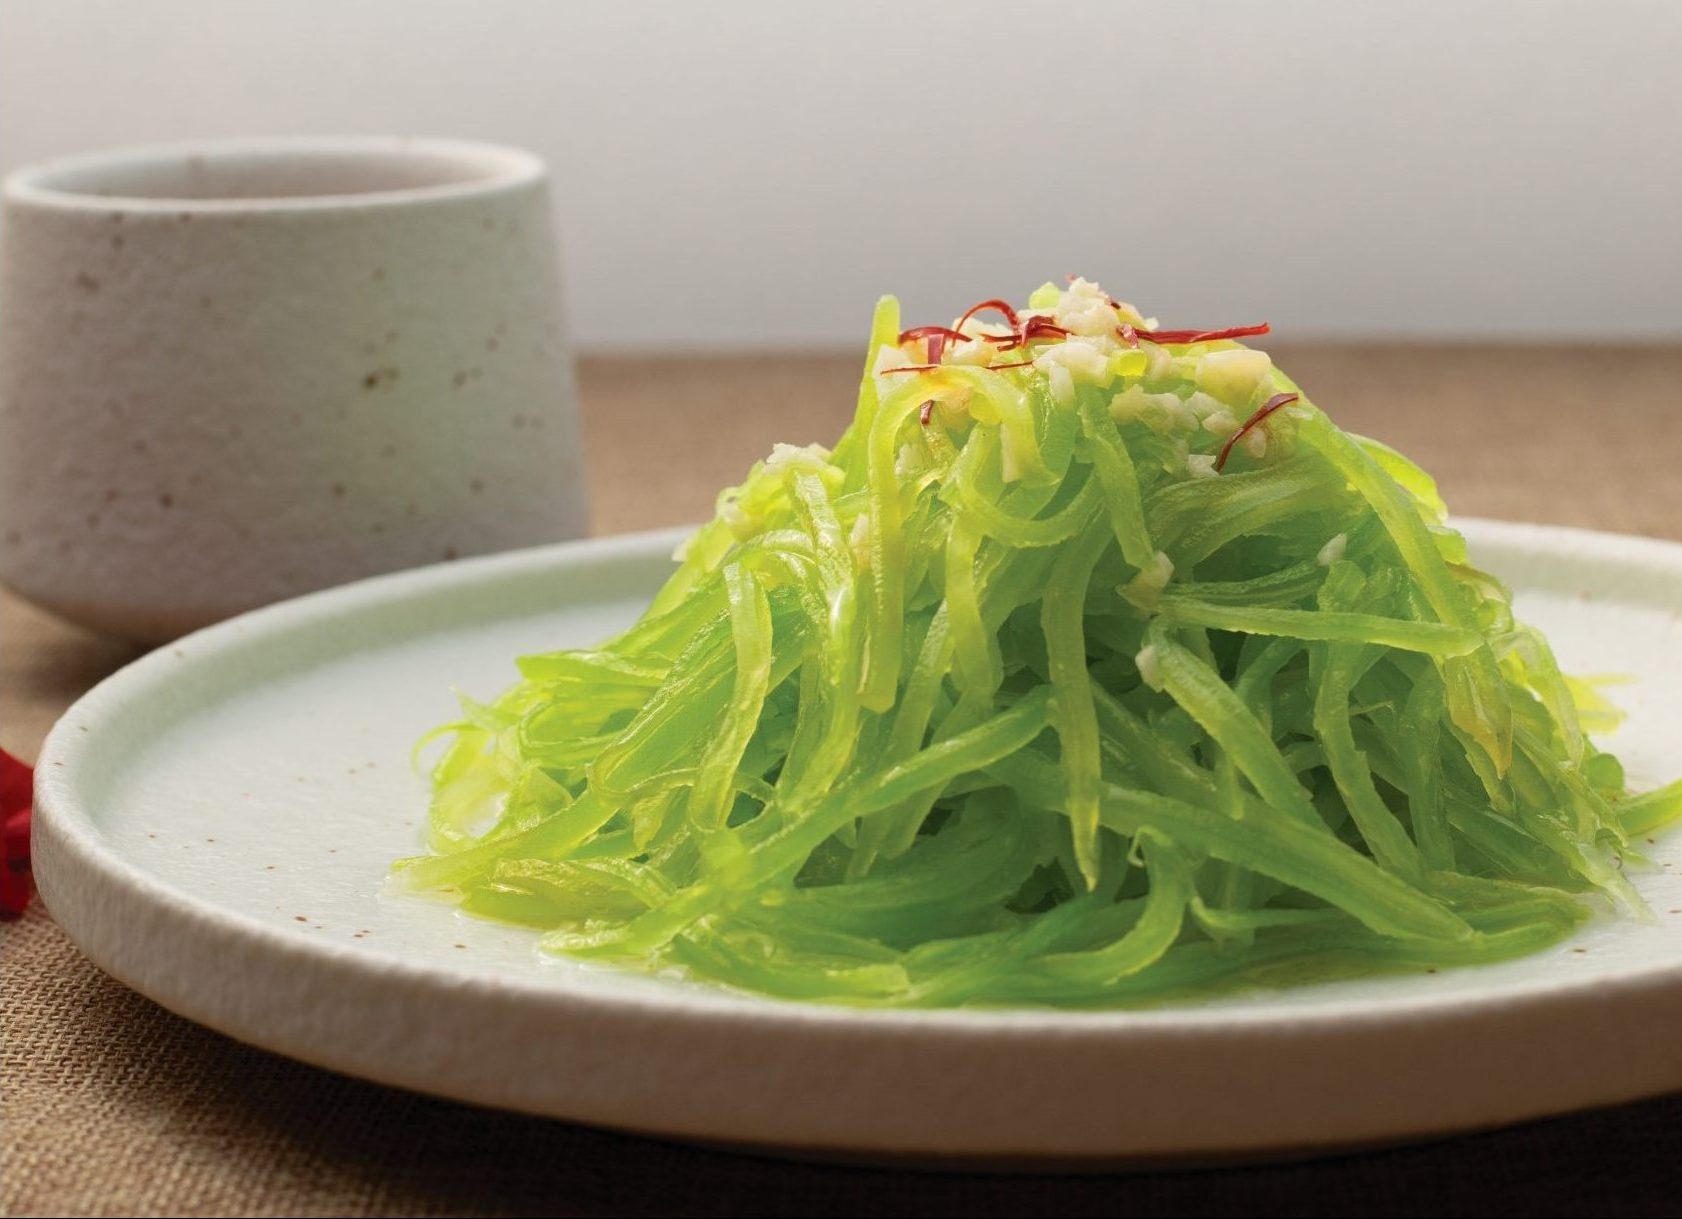 Recipes inspired by 11t solar term - Blanched Celtuce